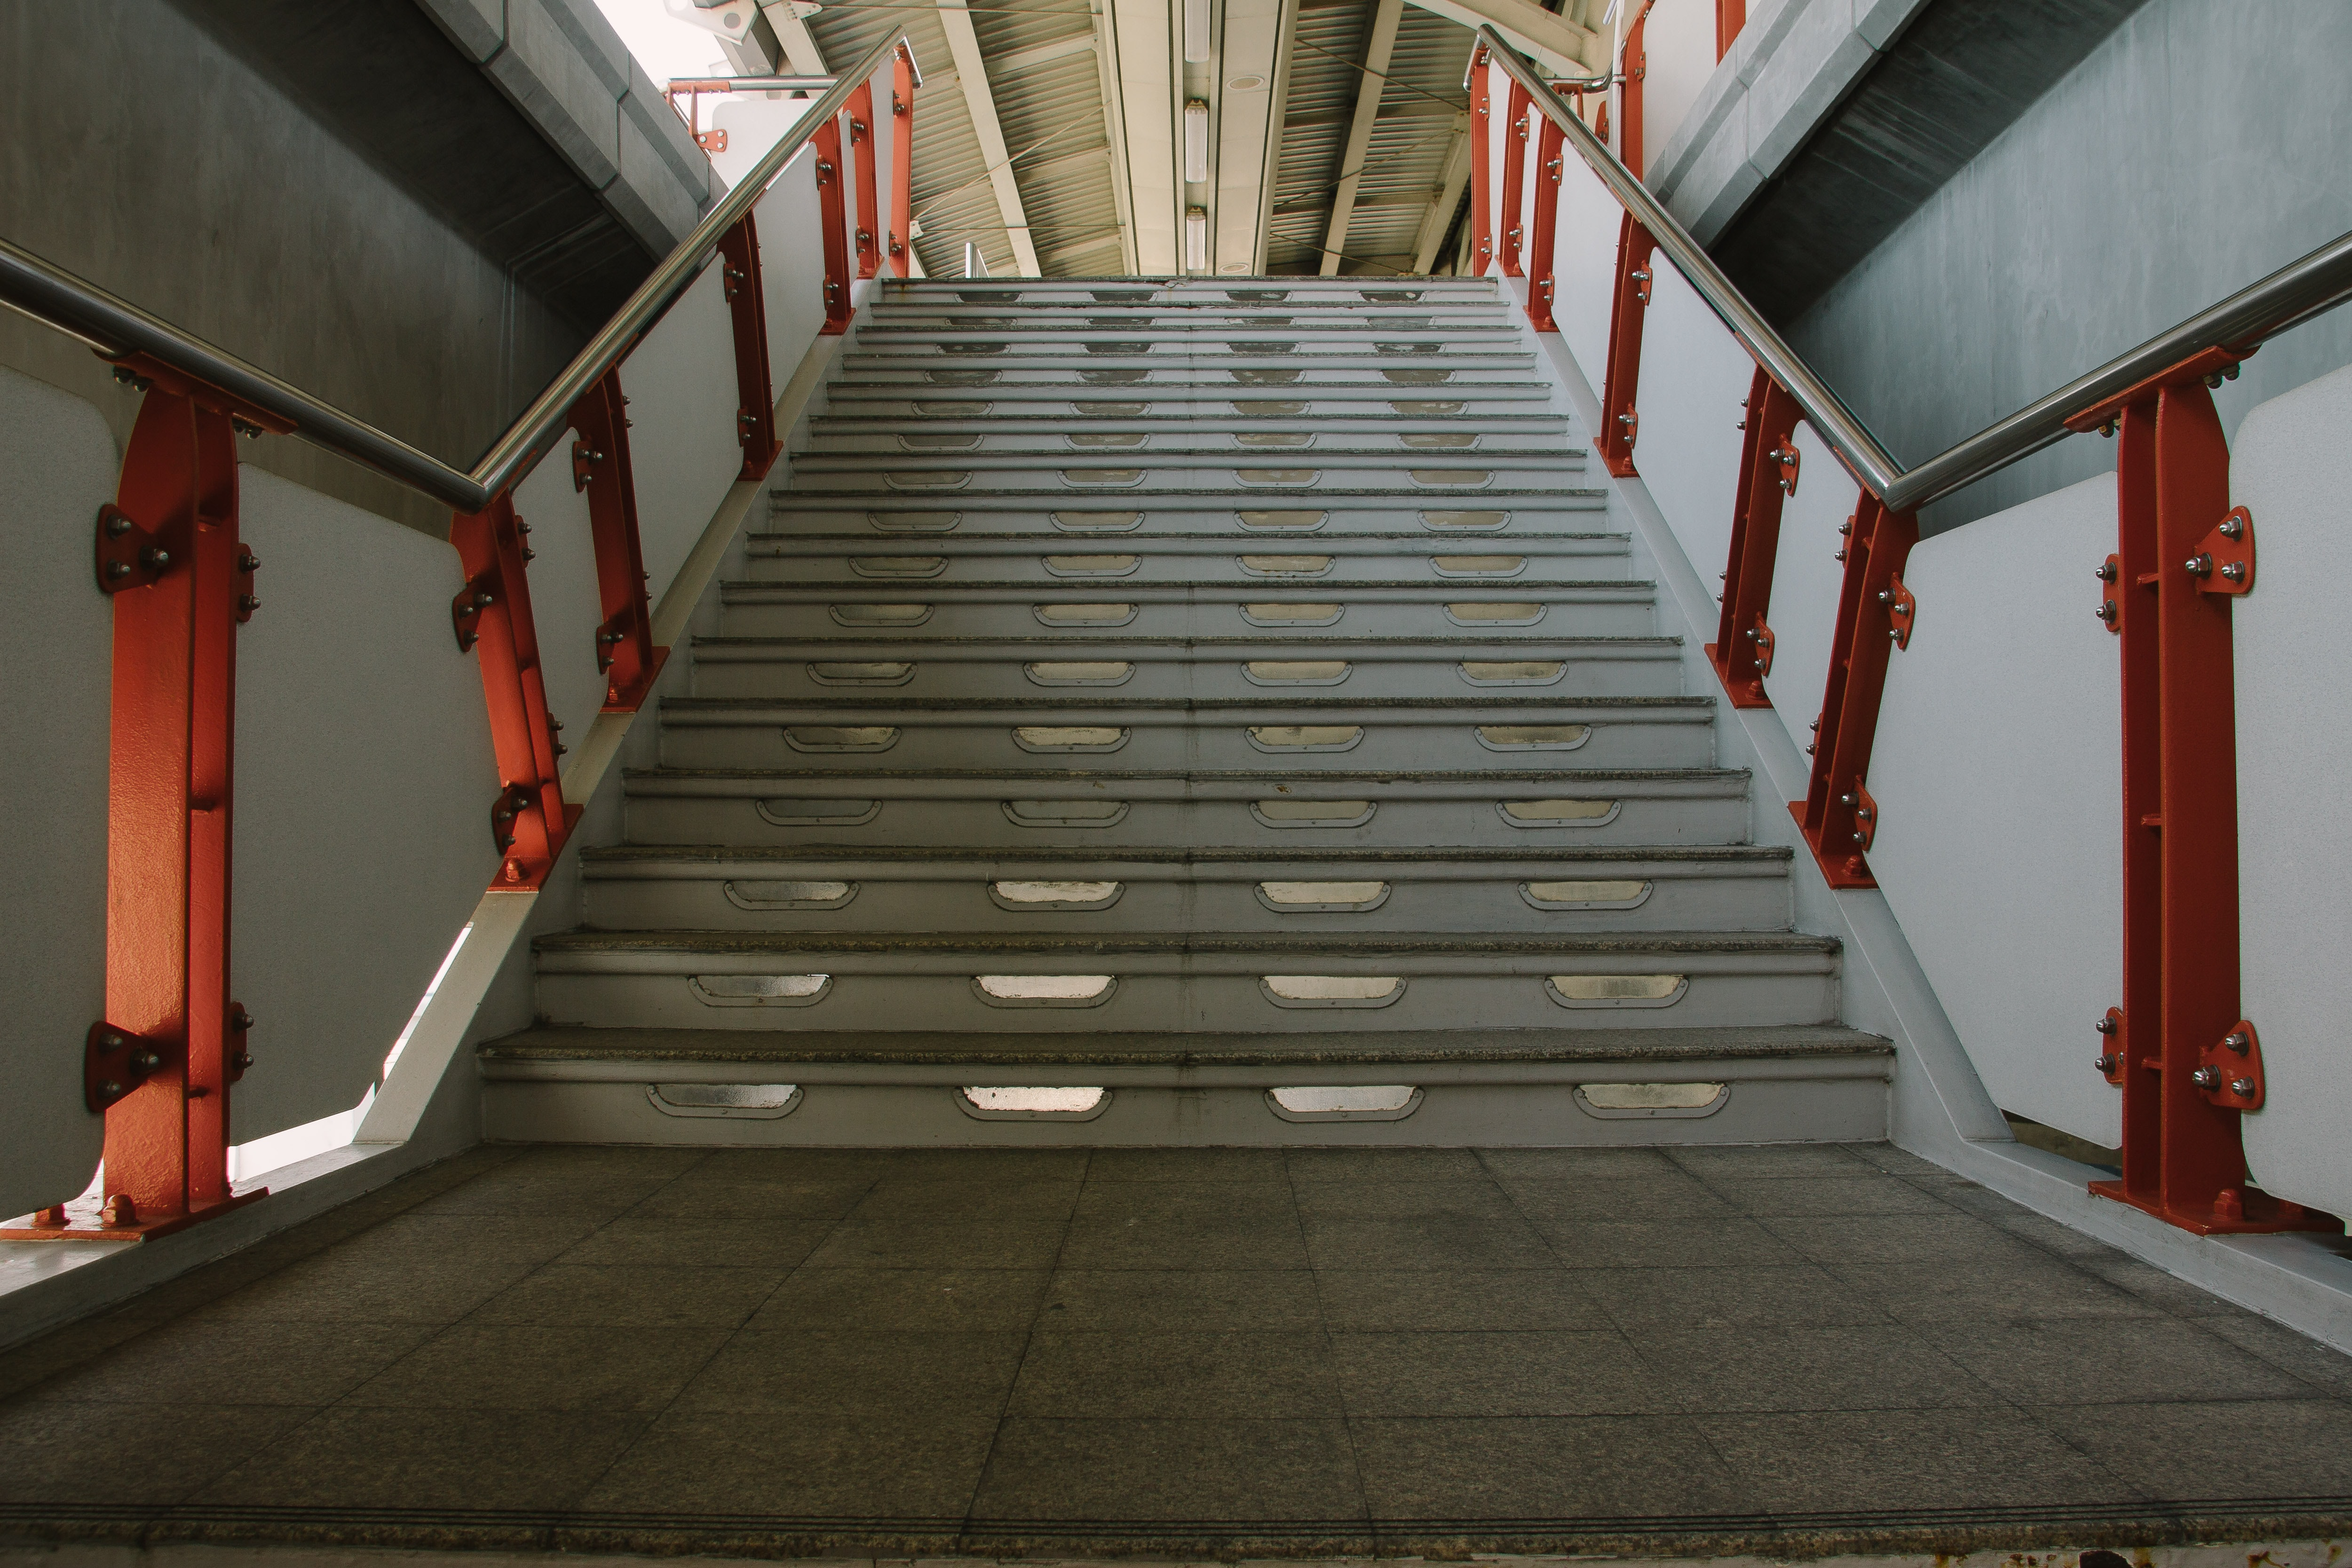 A train station staircase with red steel banisters